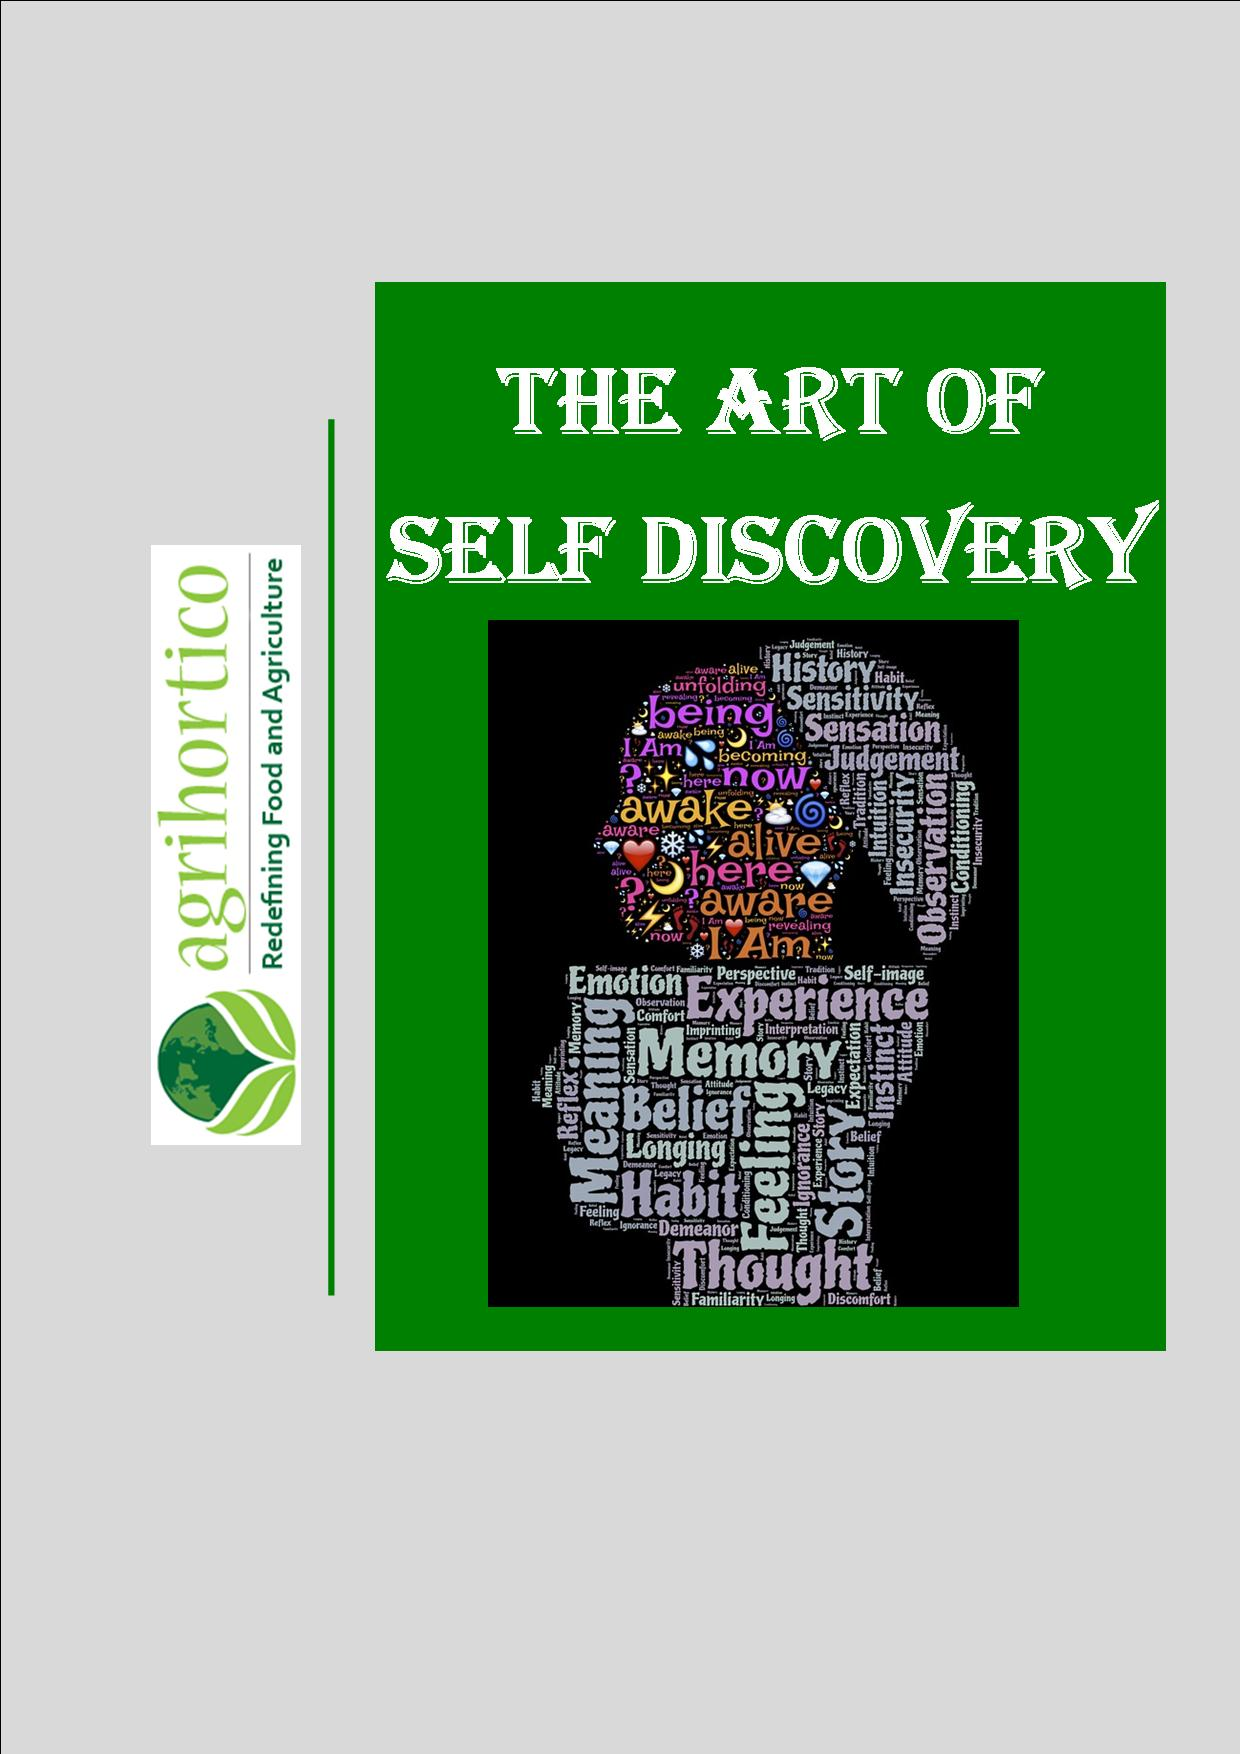 art-of-self-discovery